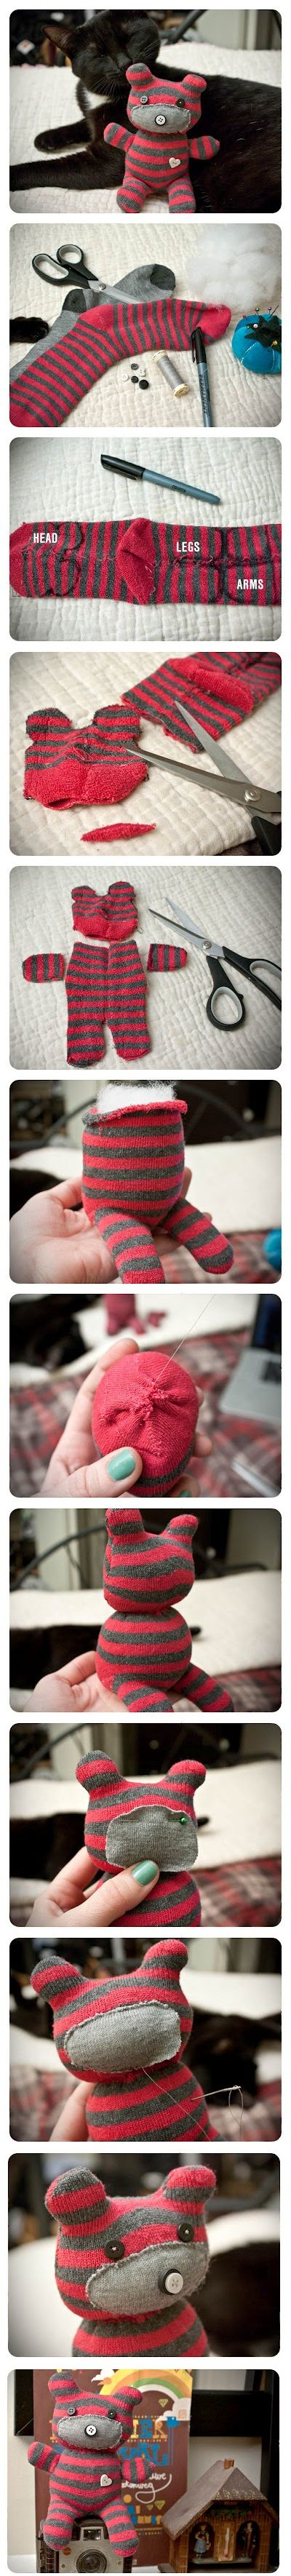 "<input type=""hidden"" value="""" data-frizzlyPostContainer="""" data-frizzlyPostUrl=""http://www.diycraftsa.com/diy-cute-little-teddy-bear"" data-frizzlyPostTitle=""DIY Cute Little Teddy Bear"" data-frizzlyHoverContainer=""""><p>DIY Cute Little Teddy Bear is creative inspiration for us. Get more photo about related with by looking at photos gallery at the bottom of this page. We are want to say thanks if you like to share this post to another people via your facebook, pinterest, google plus or …</p>"